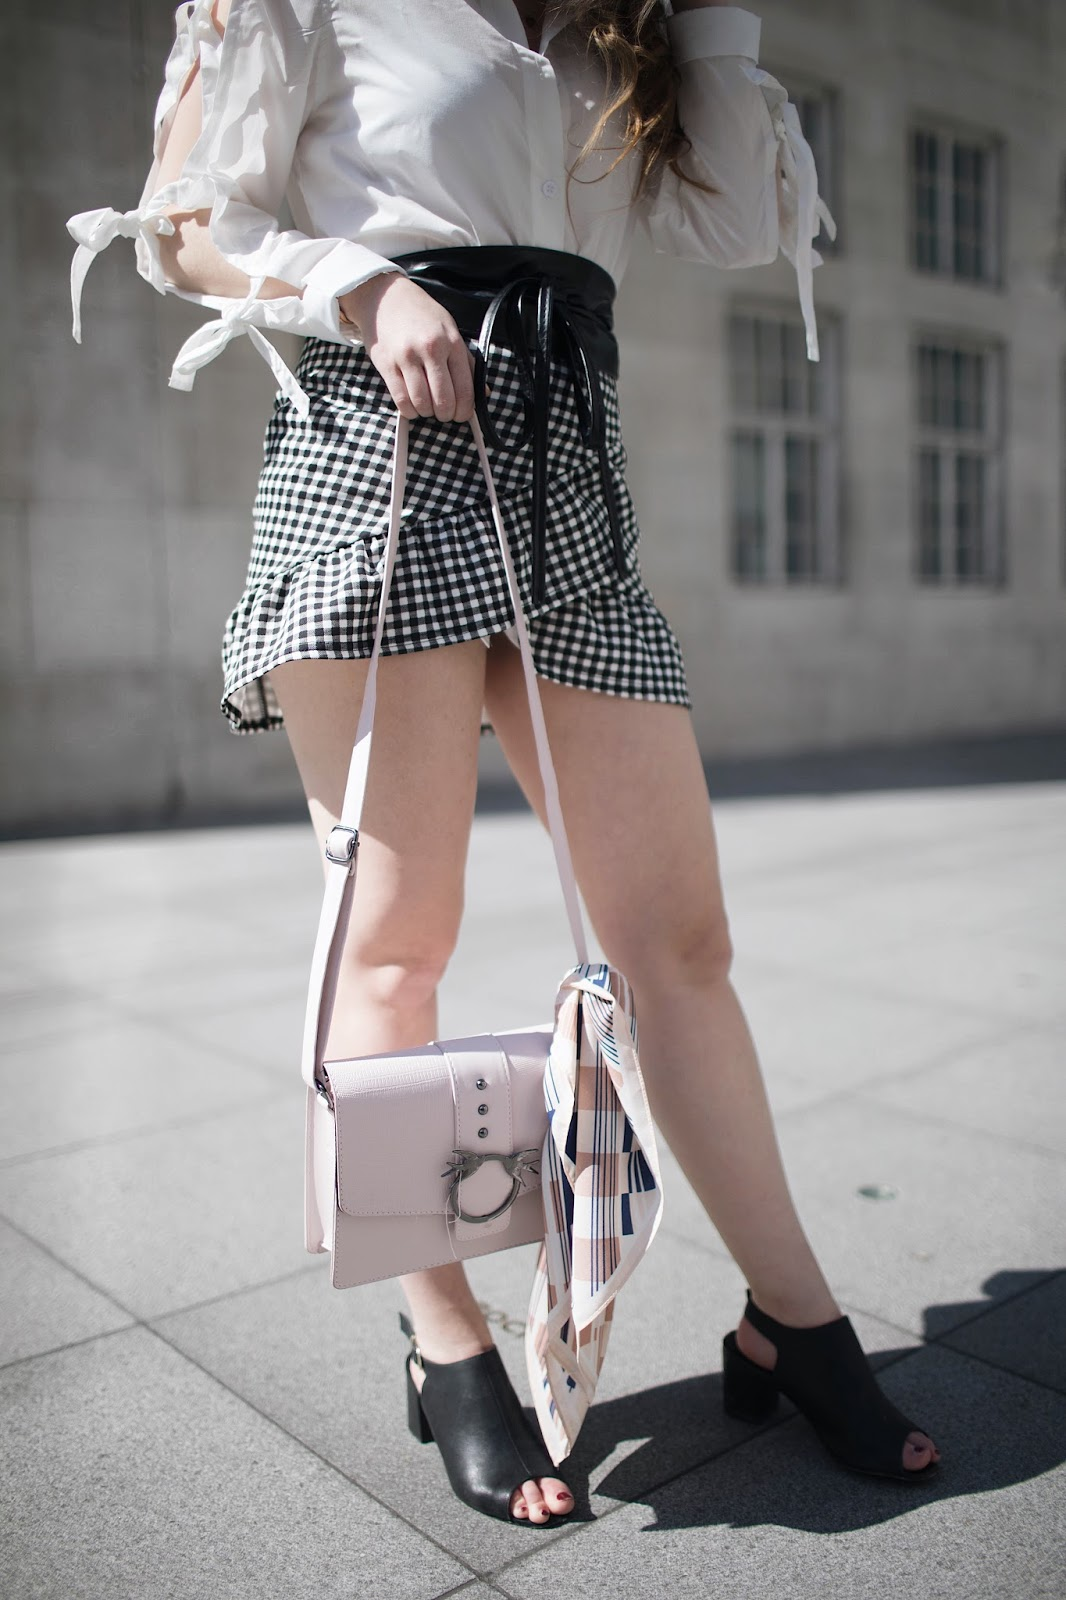 understanding your value, blogging 101, know your worth, the gingham trend, know yourself know your worth, fashion blogger, style blogger, london based style blogger, london based fashion blogger, boohoo ambassador, boohoo fashion, gingham skirt, gingham outfit idea